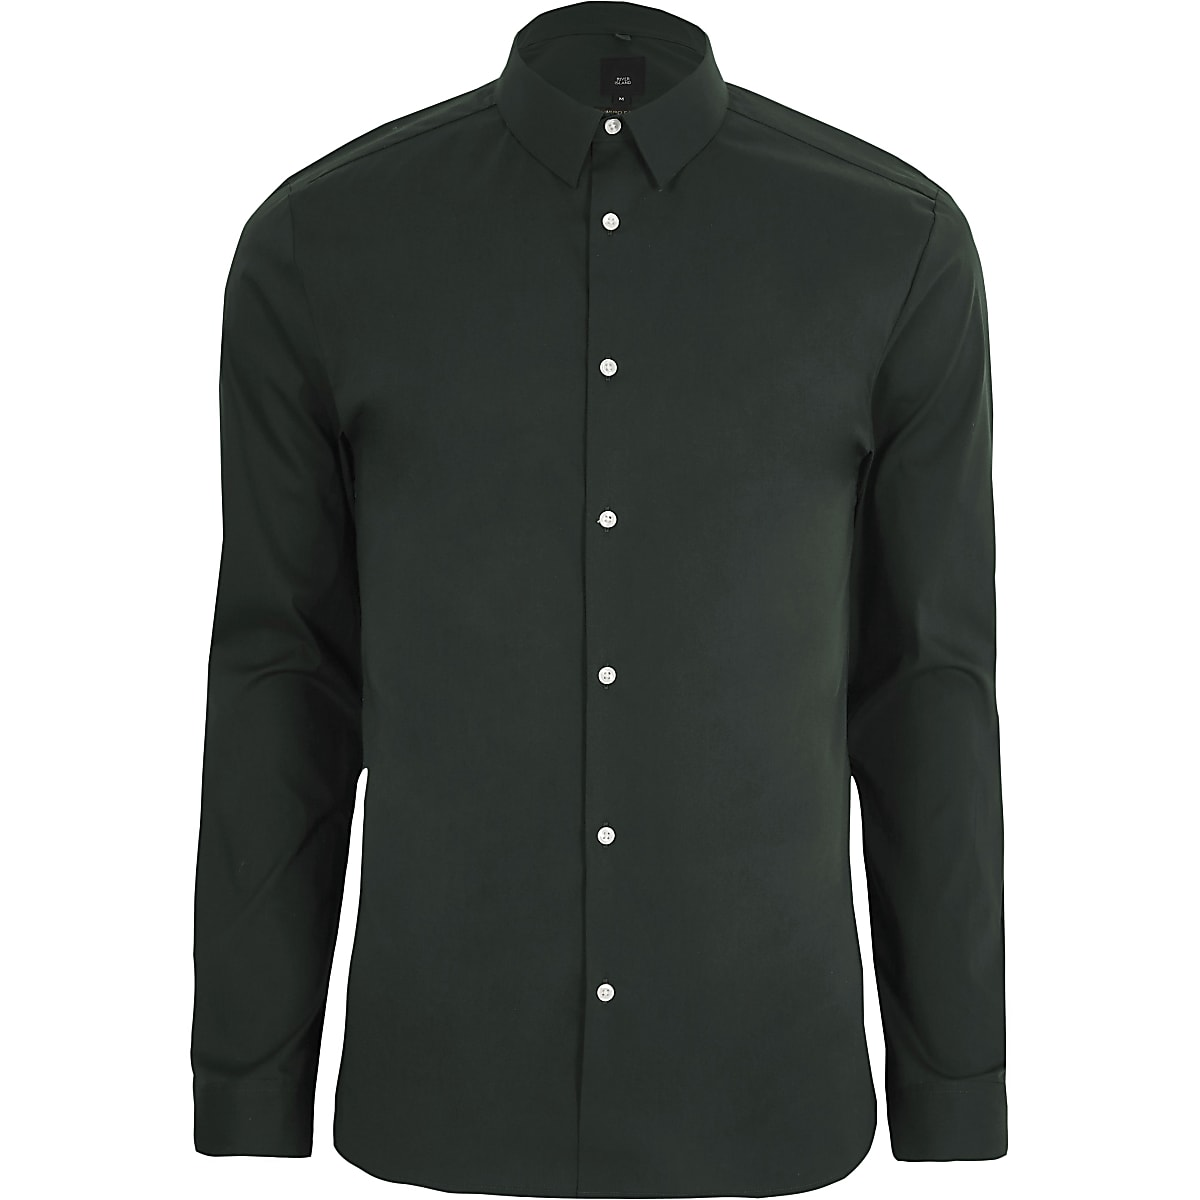 Green muscle fit long sleeve shirt